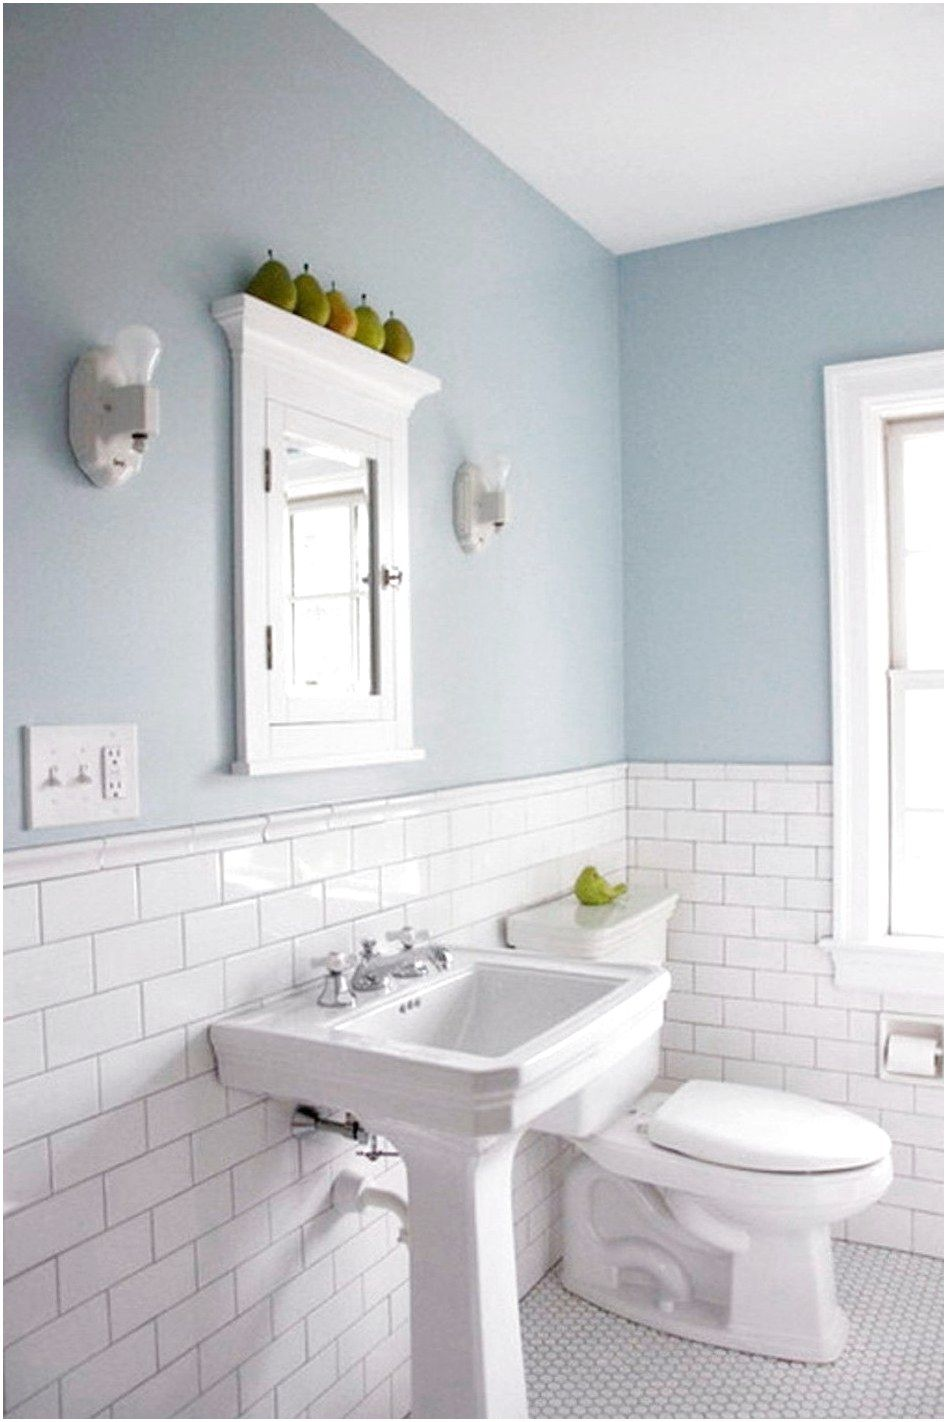 Bathroom Best Ways In How To Tile A Bathroom Floor For Luxurious Look White Subyway Color Comb Light Blue Bathroom Bathroom Wall Tile White Subway Tile Shower